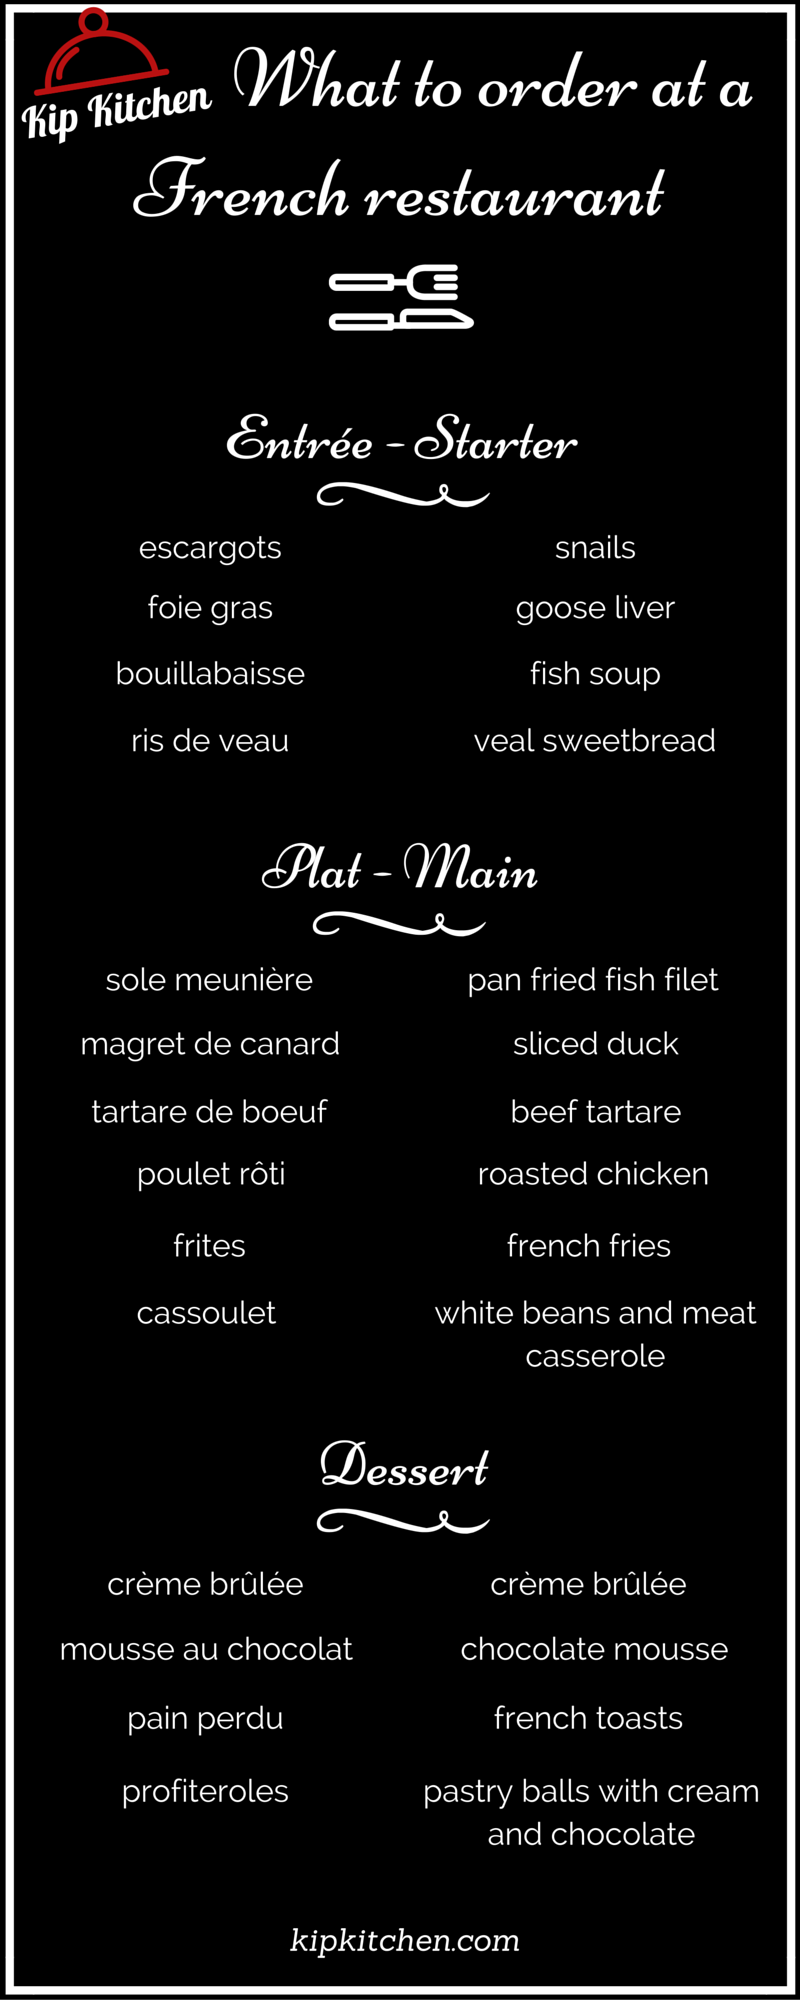 Famous French Dishes. What to order at a French Restaurant | kipkitchen.com #france #food #restaurant #travel